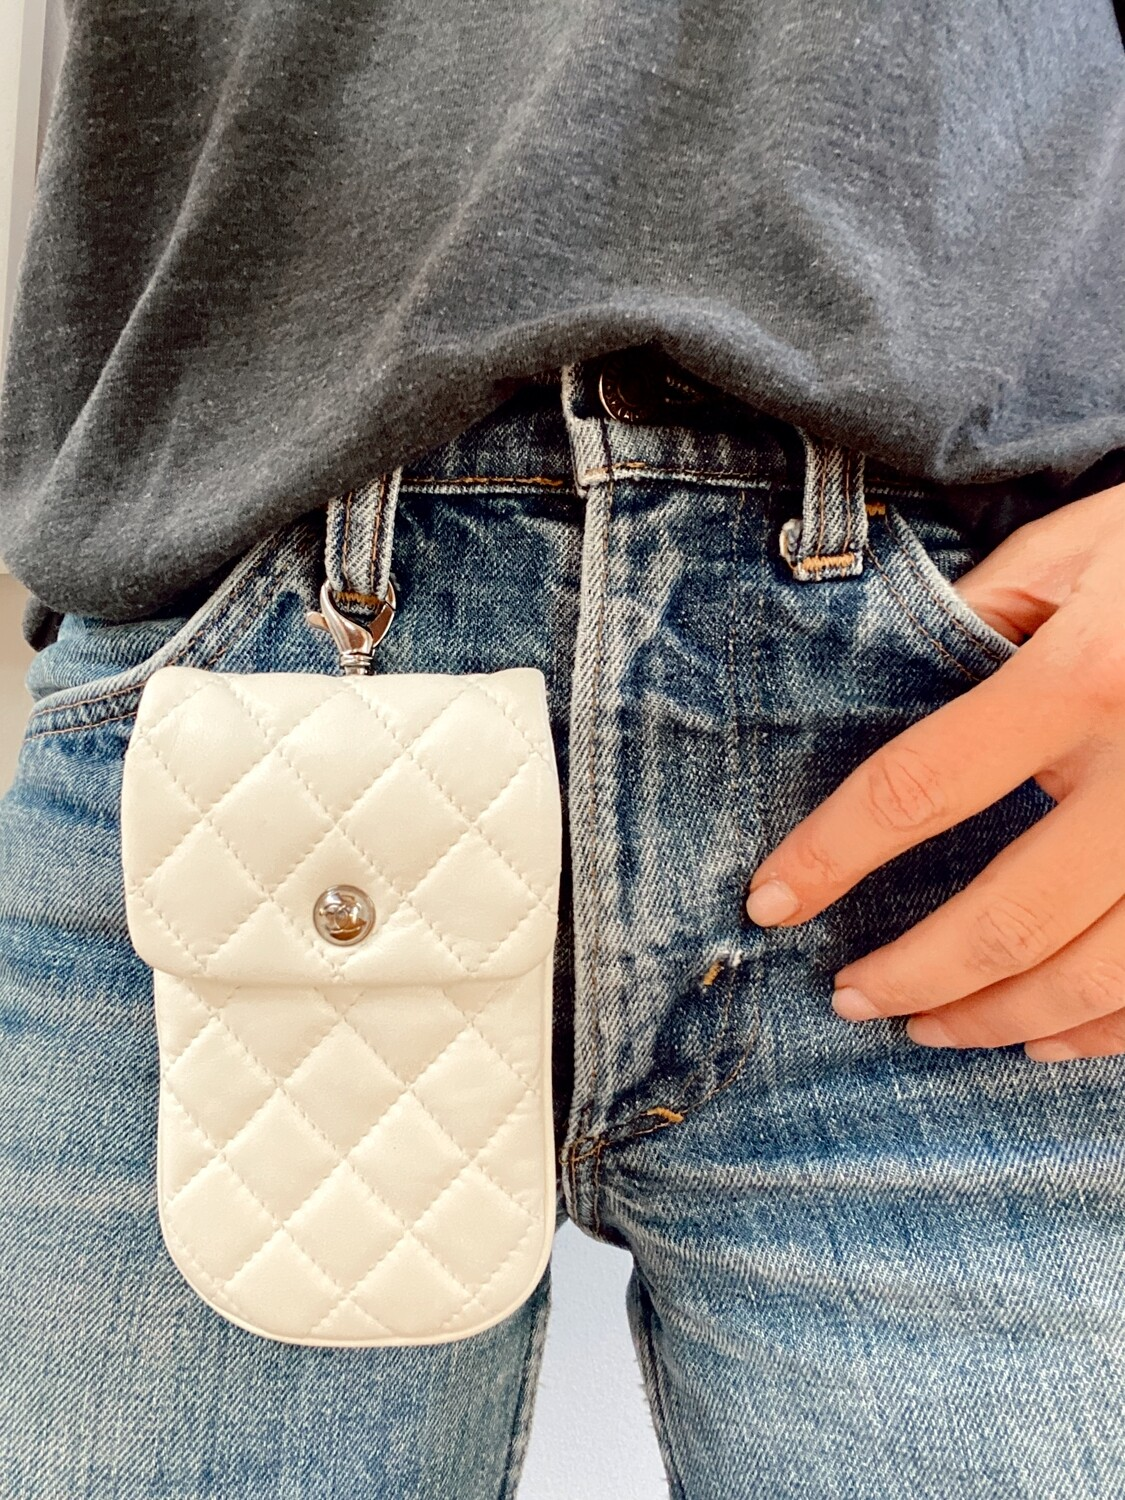 CHANEL CC LOGO OFF WHITE QUILTED LEATHER FLAP MINI BAG POUCH